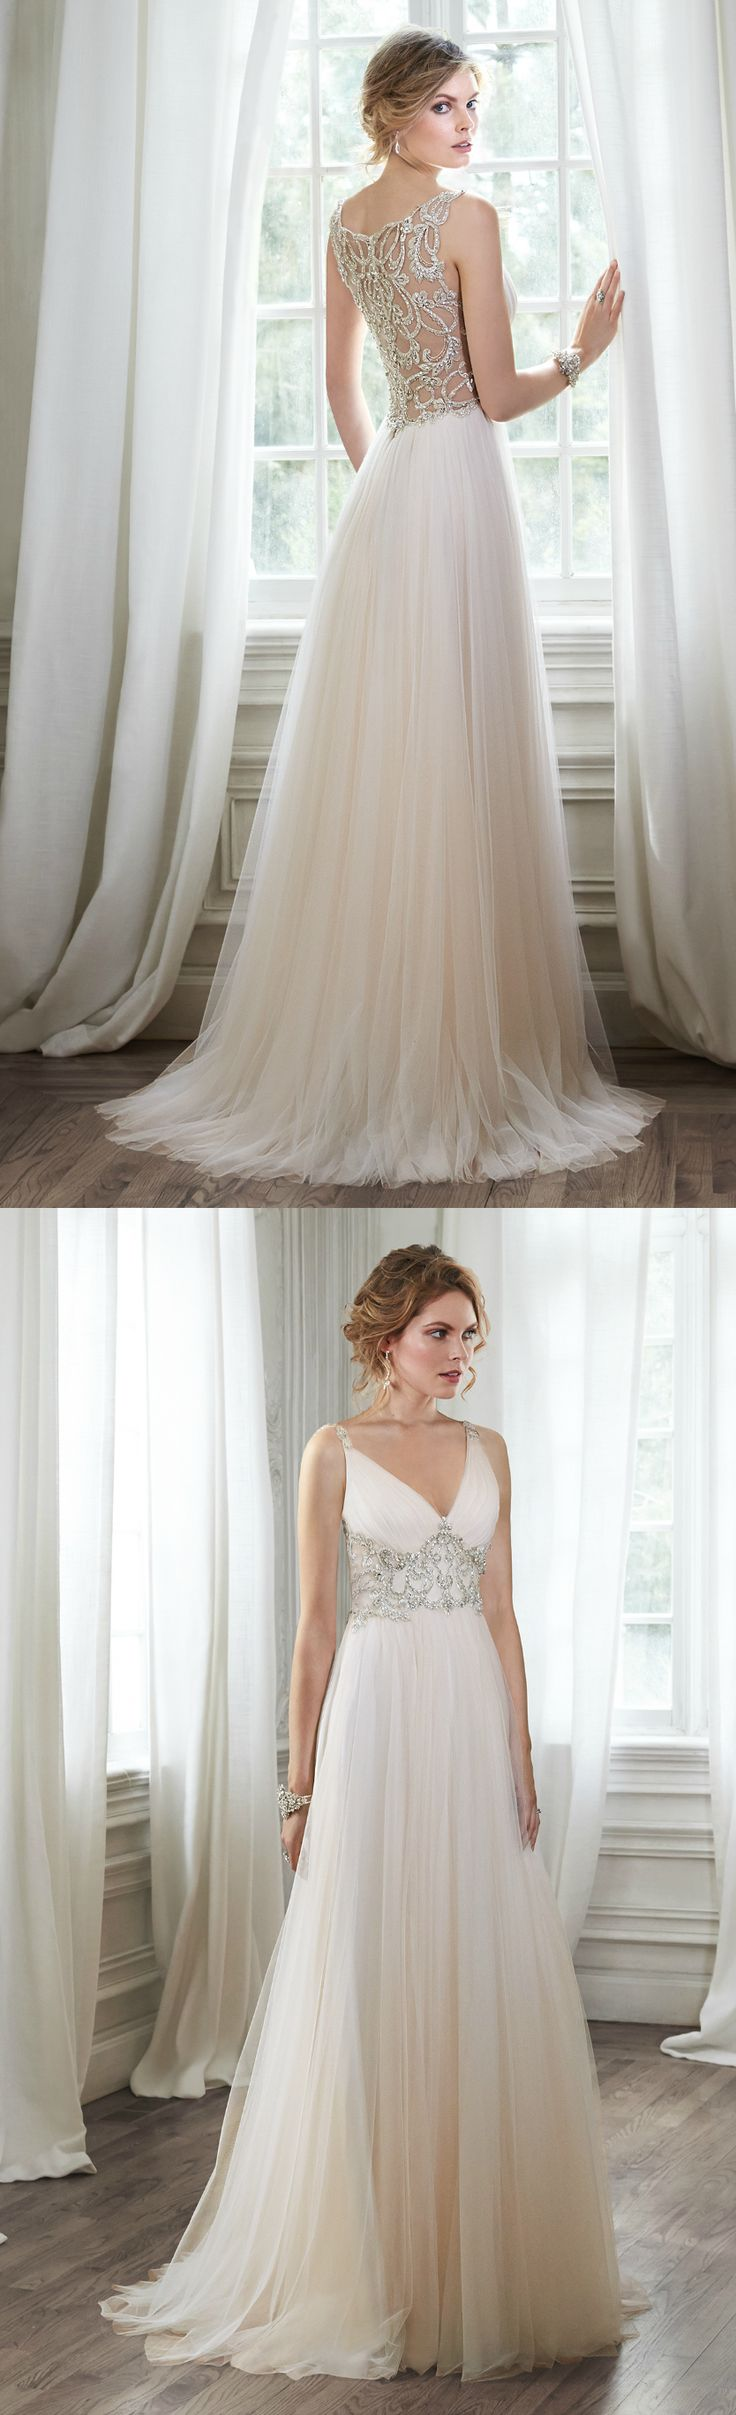 How far in advance to book wedding dress appointment